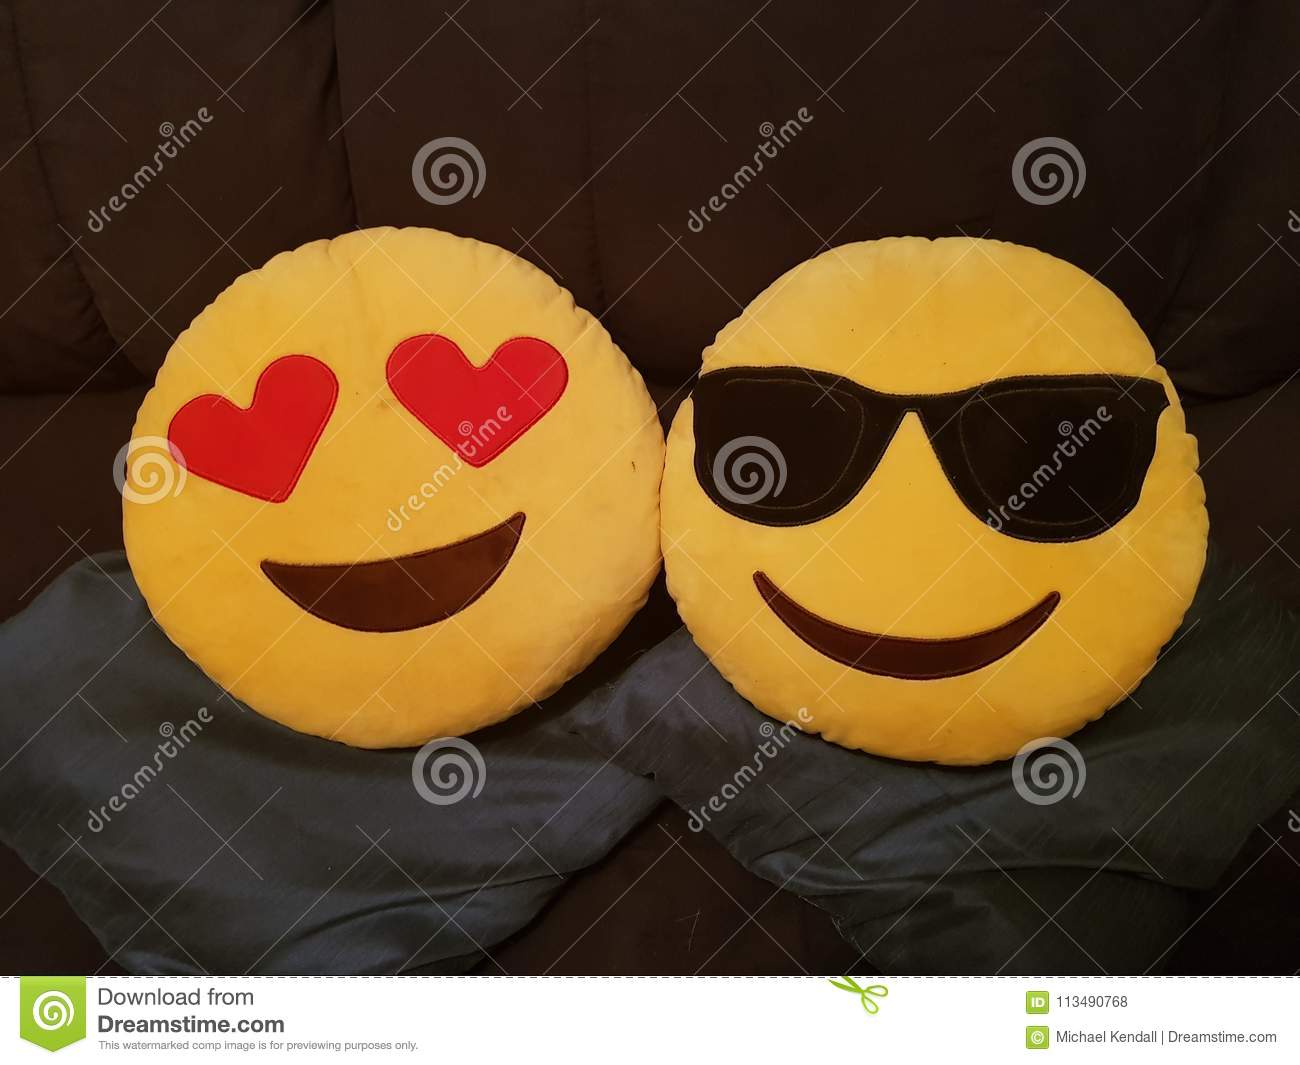 Emoji cushions stock photo  Image of emoji, heart, cushions